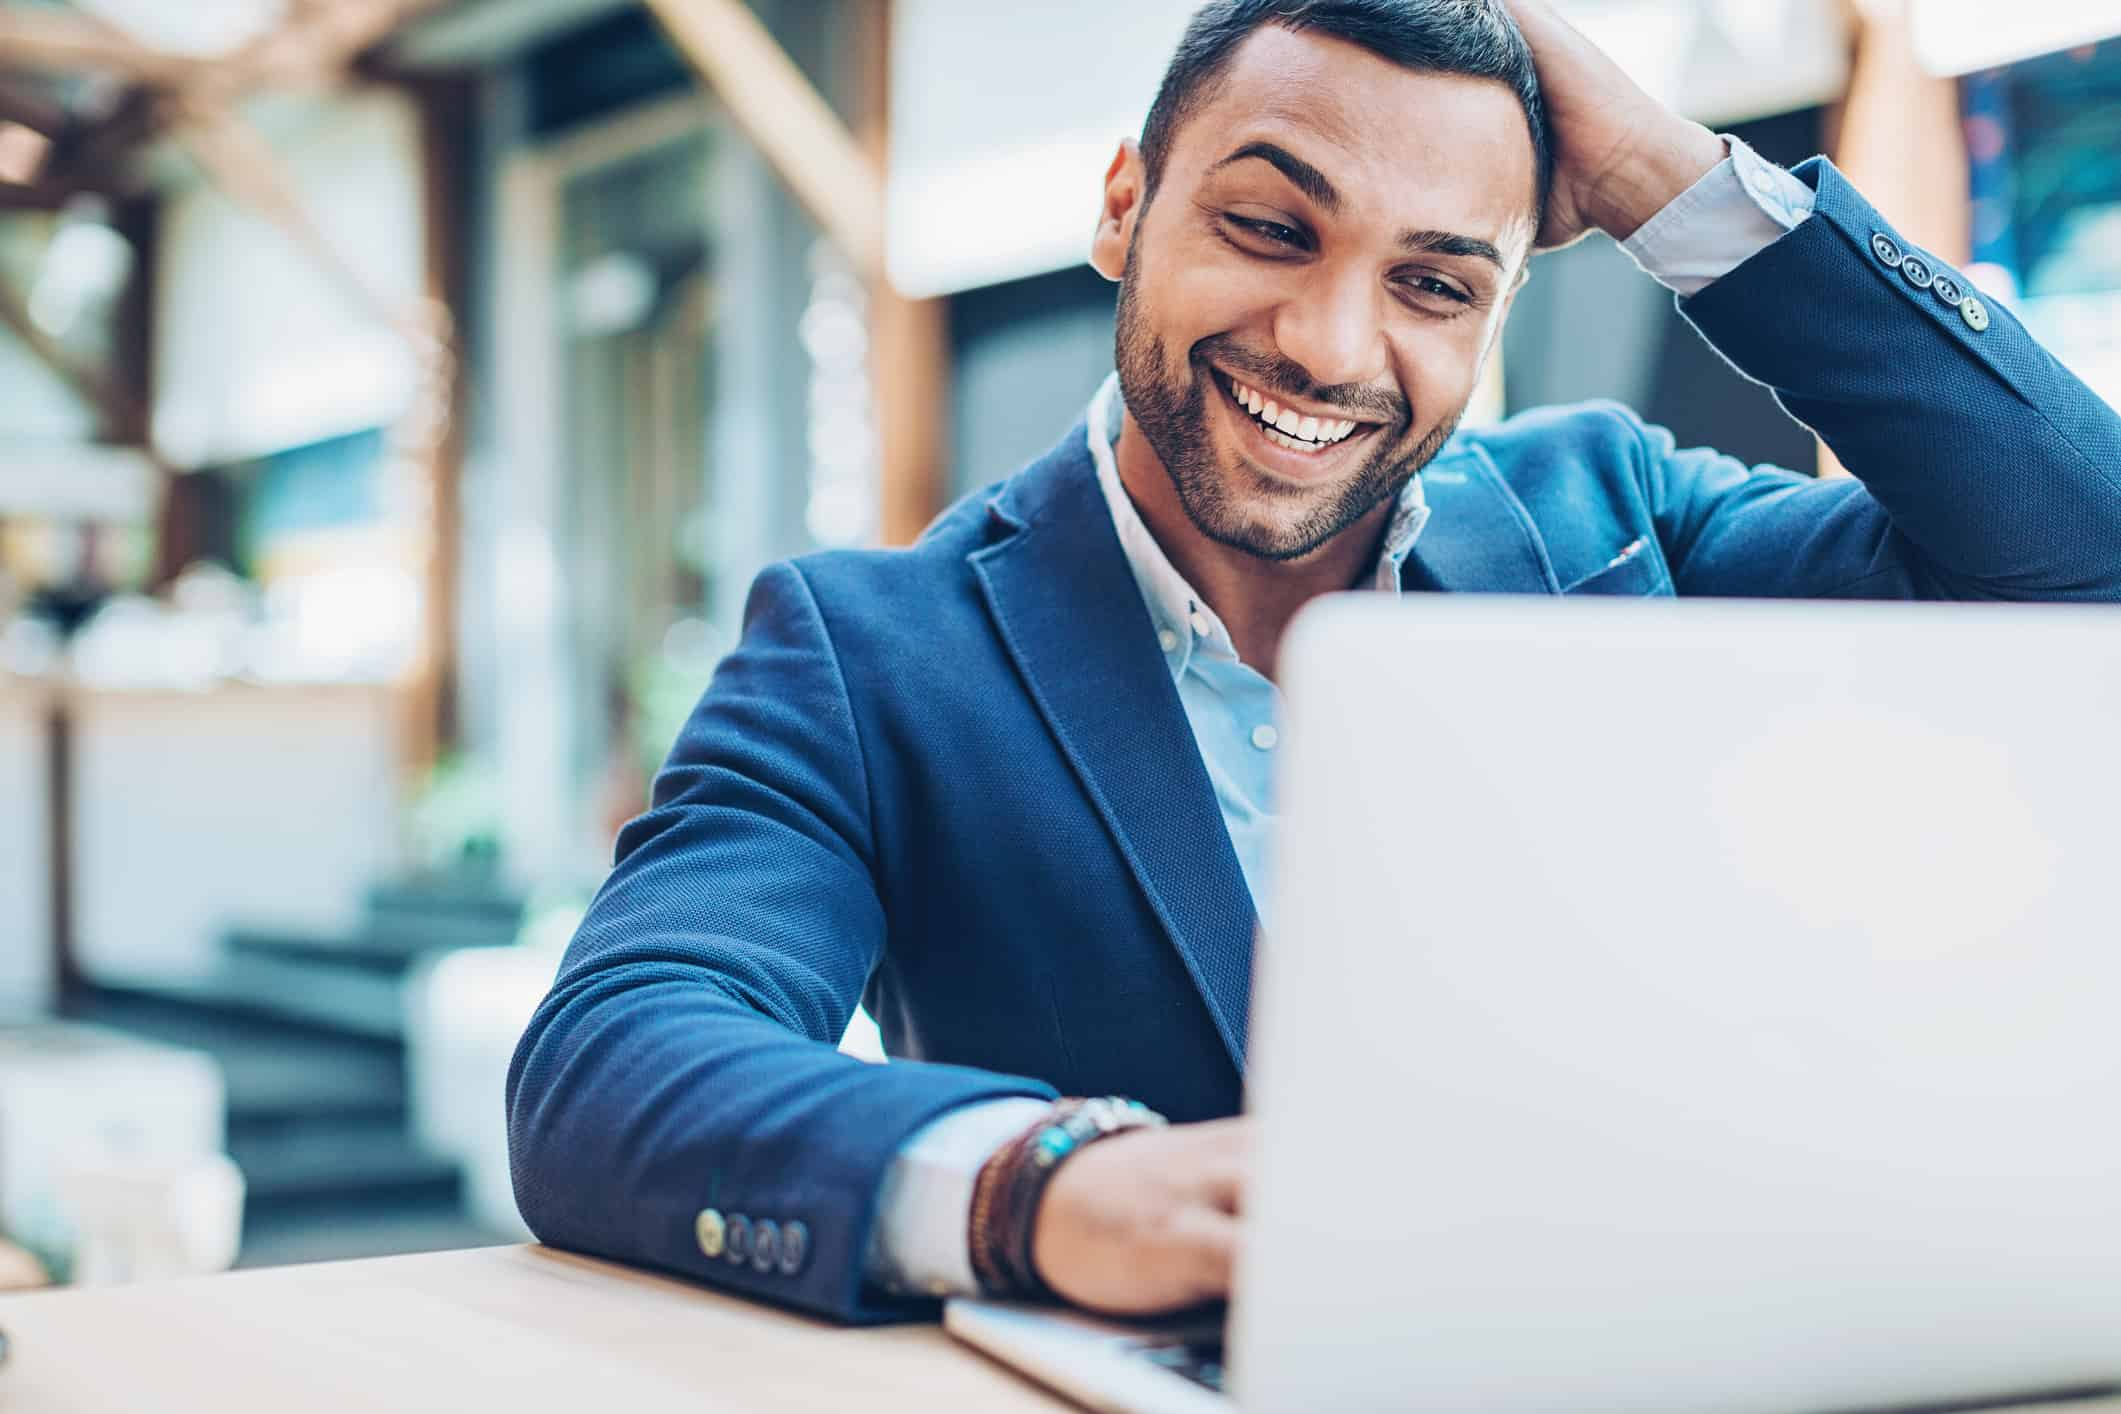 Millennial ready to achieve financial success in 2018 looks at his laptop happily surprised